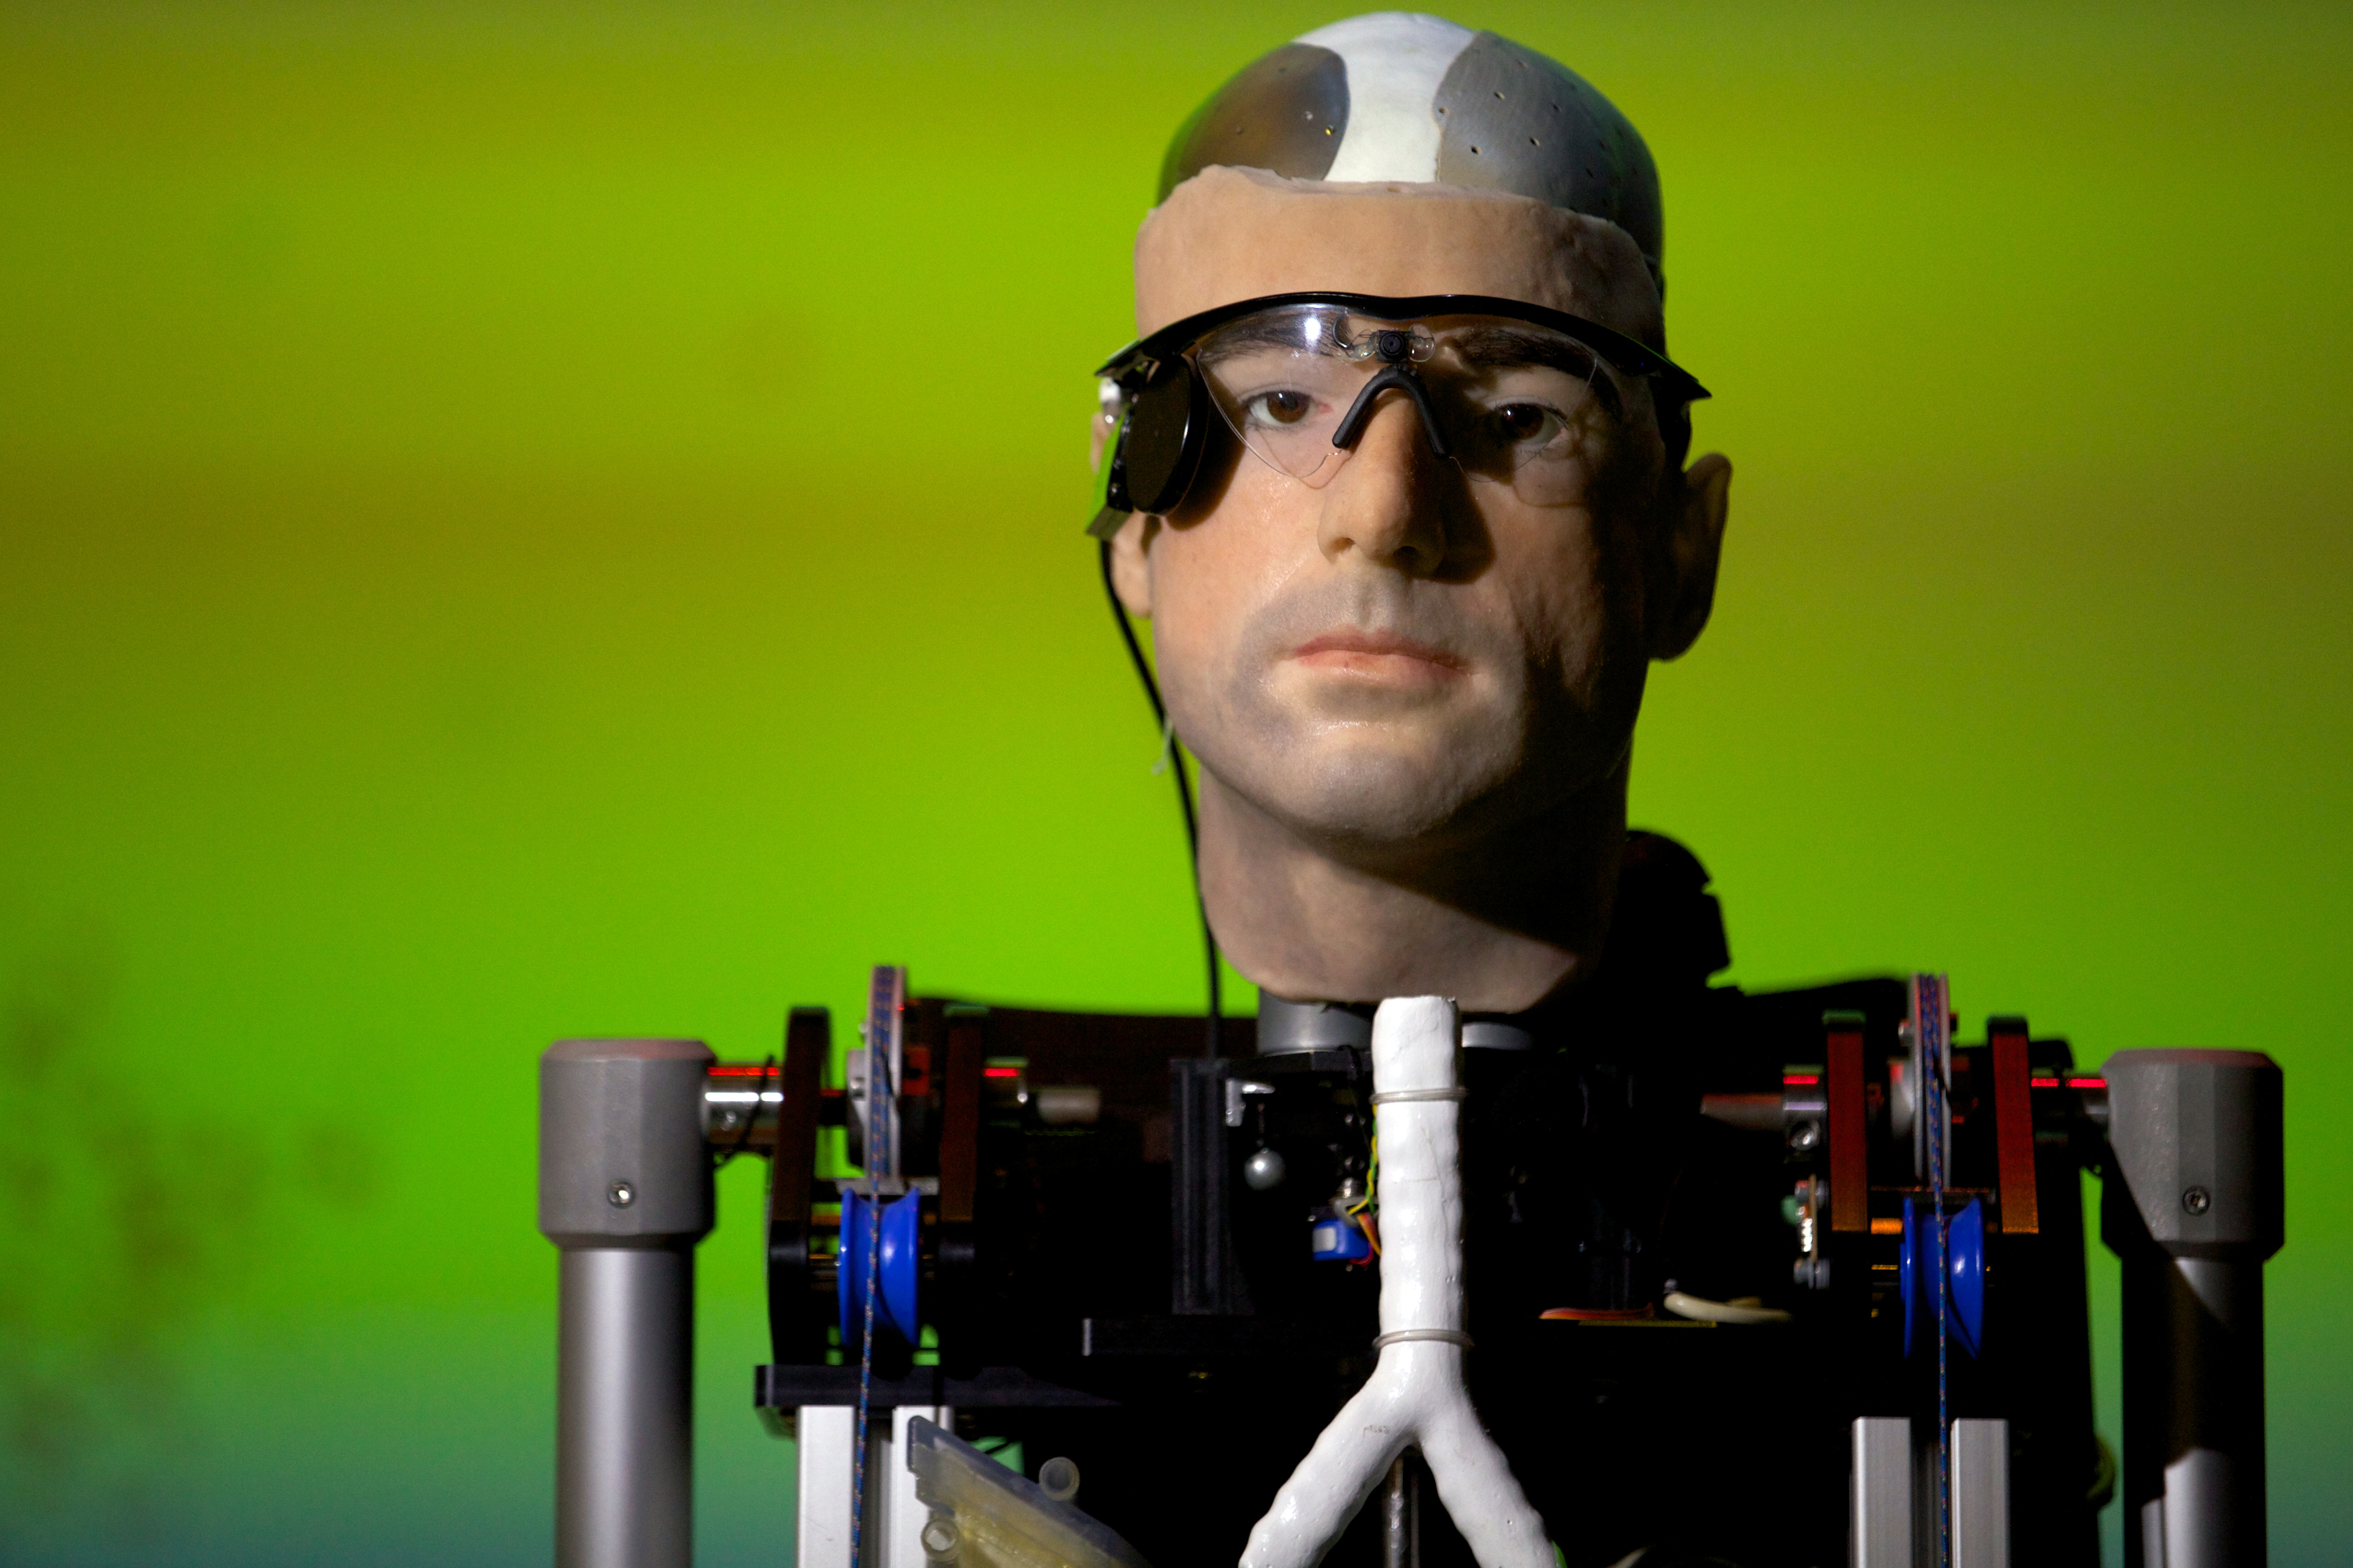 the  1 million bionic man - photo 1 - pictures